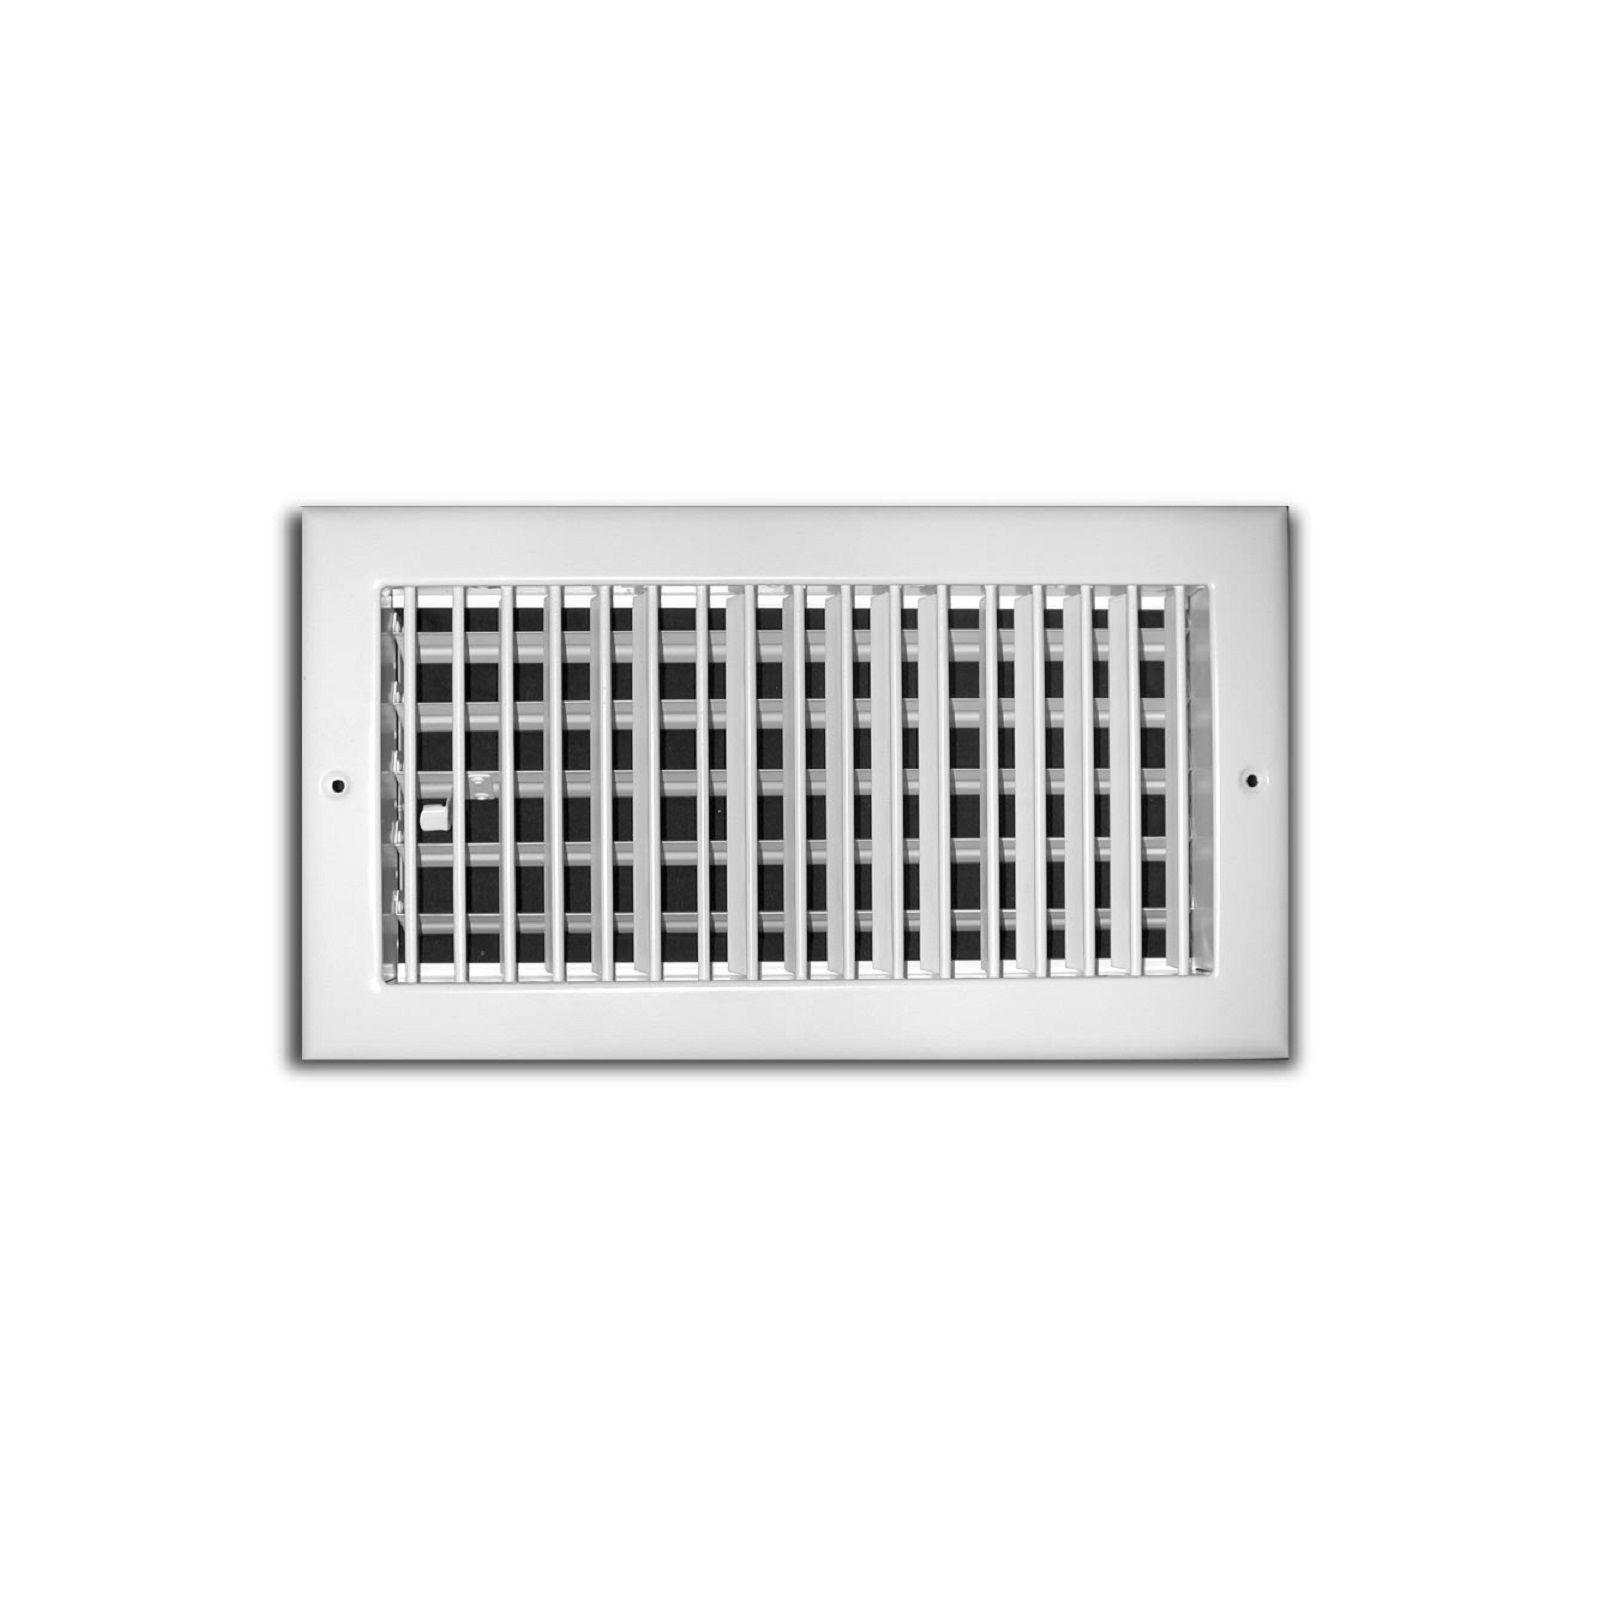 "TRUaire 210VM 12X04 - Steel Adjustable 1-Way Wall/Ceiling Register With Multi Shutter Damper, White, 12"" X 04"""